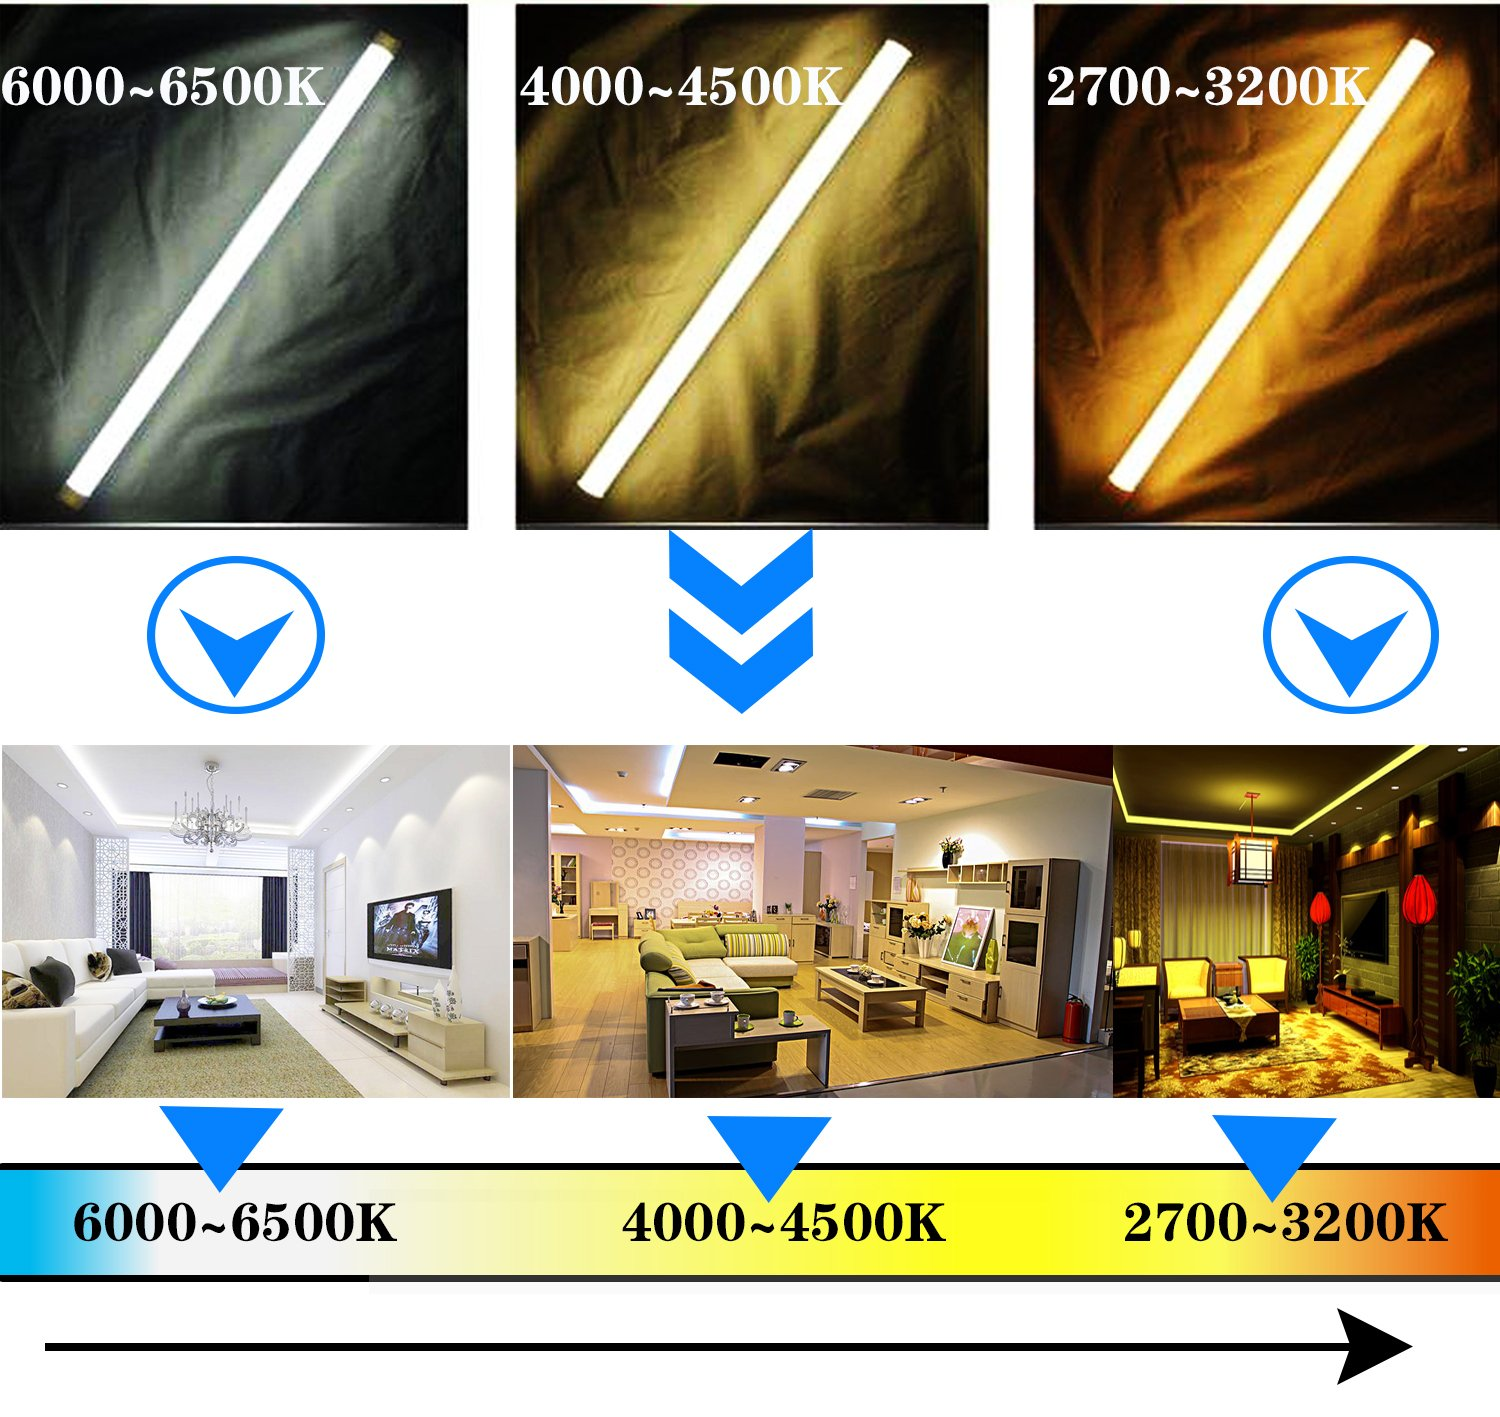 WYZM R17D 4FT 20W F48T12/CW/HO Straight T12 Fluorescent LED Tube Light Bulb for Vending Cooler Freezer Replacement Bulb (10-Pack 5500k) by WYZM (Image #8)